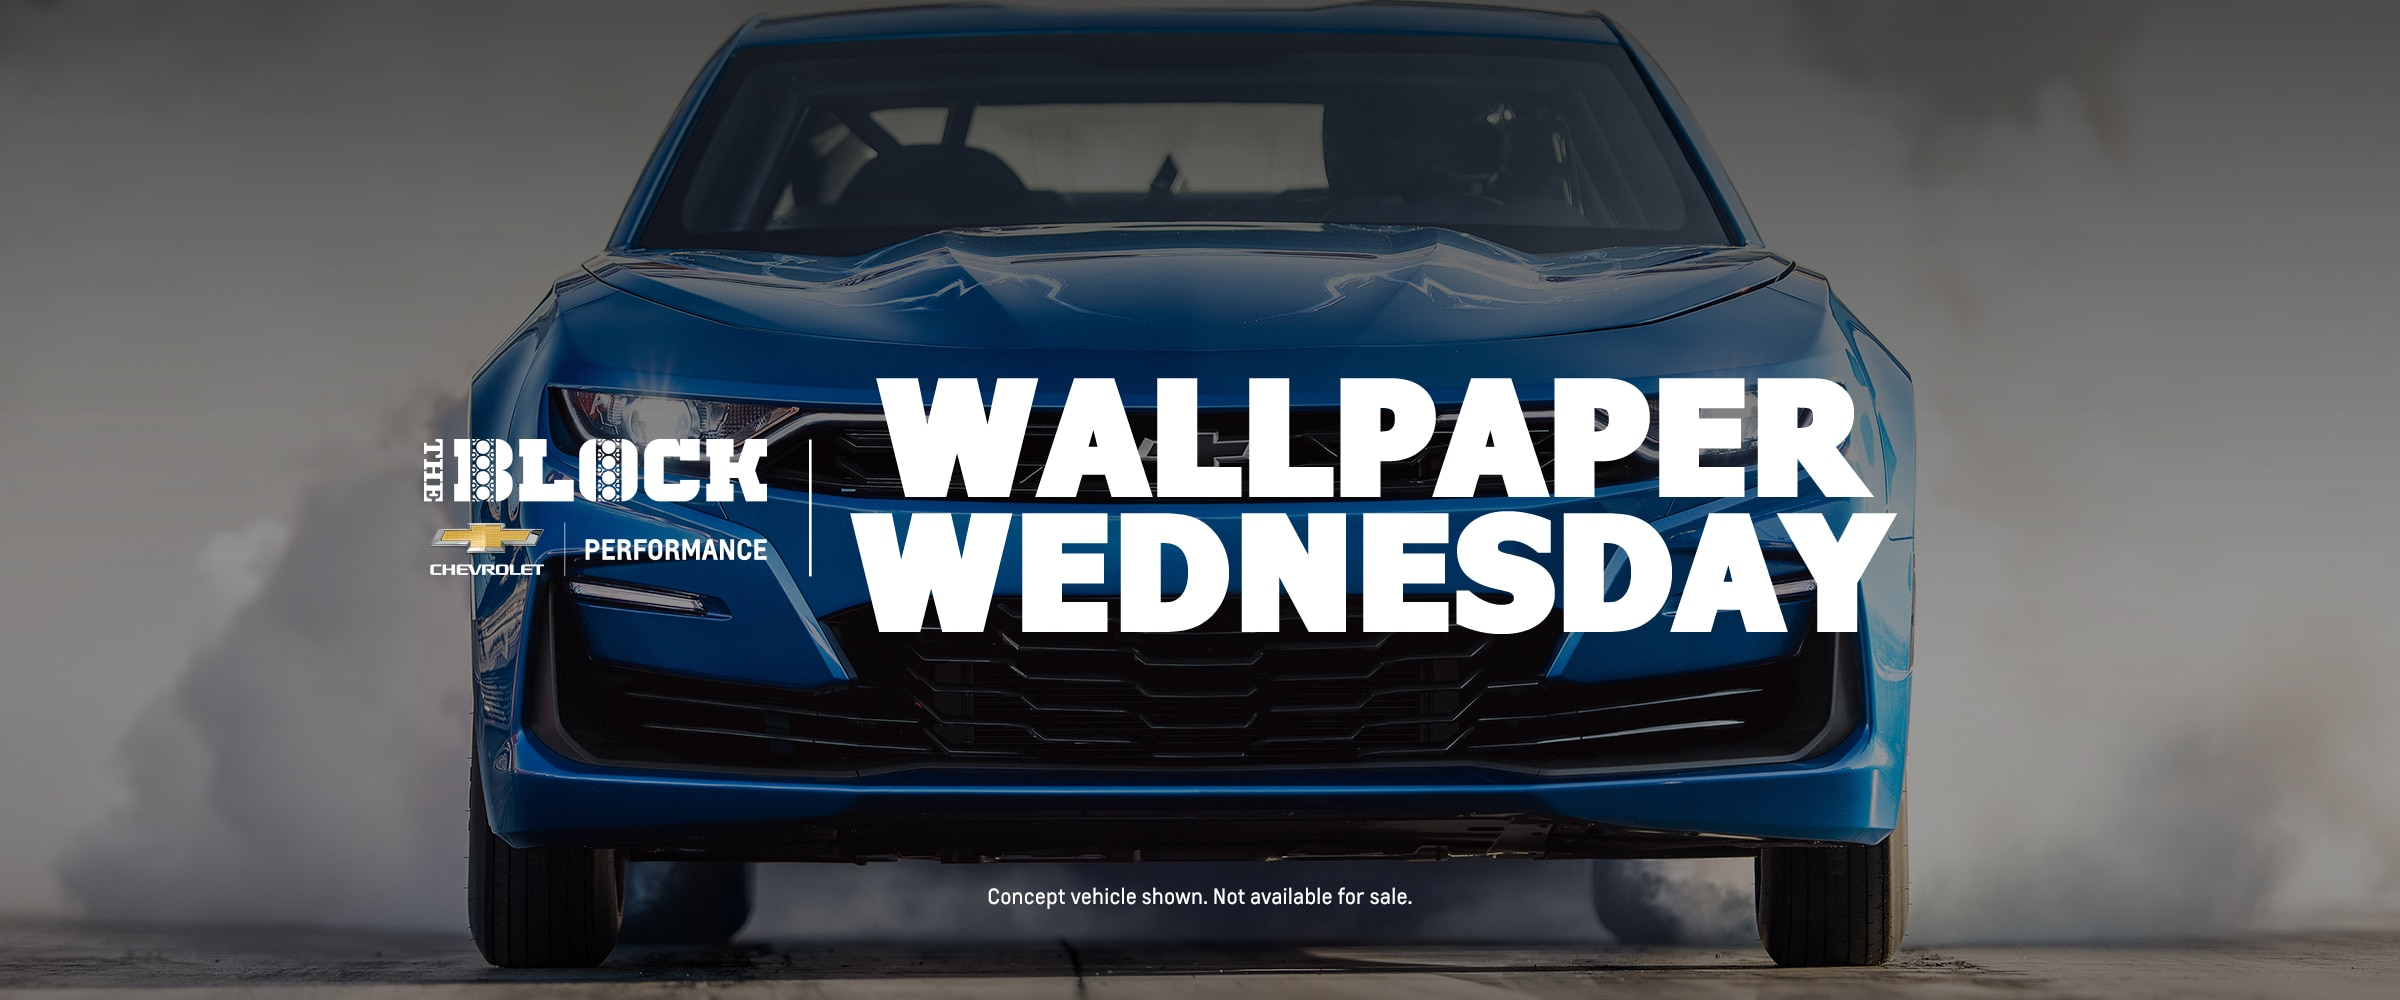 Racing, Chevy, Chevrolet, Chevrolet Performance, Team Chevy, Motorsports, Drag Racing, COPO, COPO Camaro, Camaro, eCOPO, Electric COPO, Wallpaper, Wallpaper Wednesday, Downloads